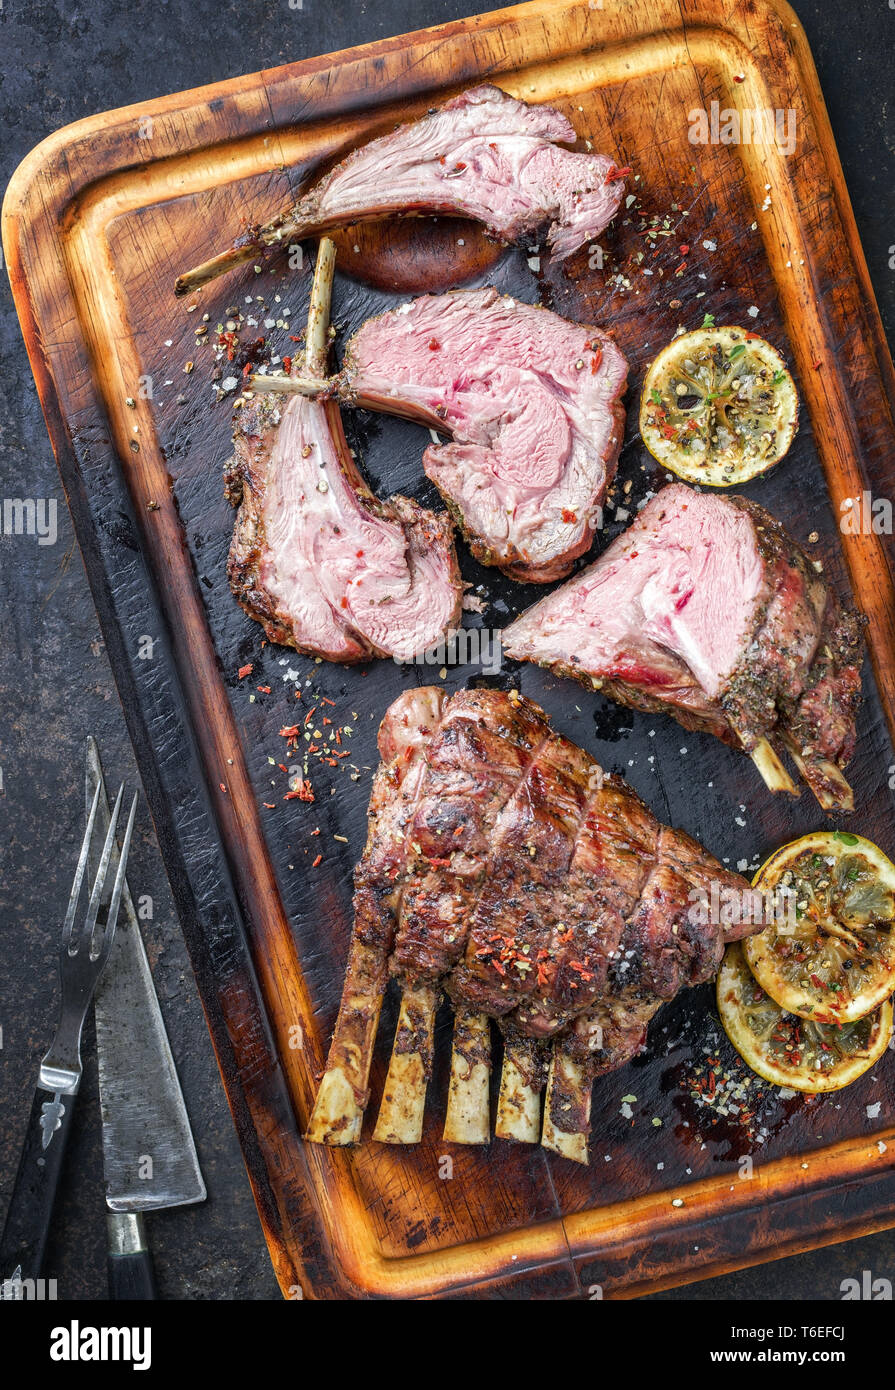 Barbecue Leg of Lamb and Rack as top view on burnt cutting board - Stock Image